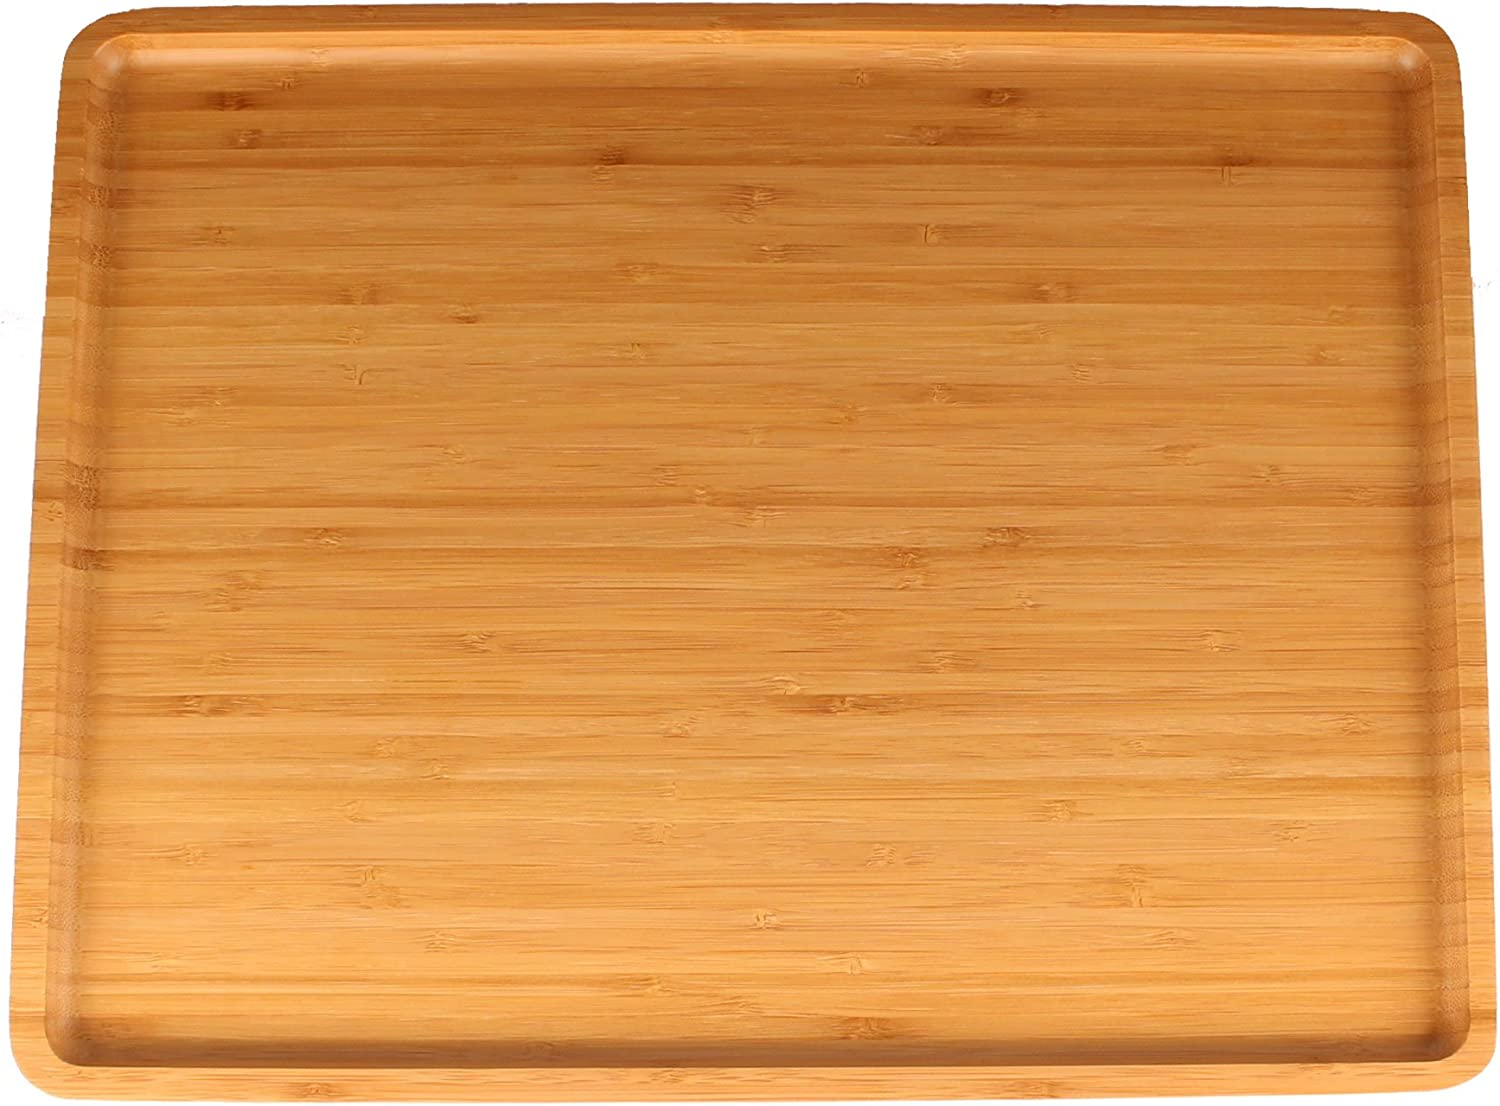 """Organic Bamboo Serving Tray - 17""""x13""""x0.75"""" - Rounded Edges - 1 Piece"""